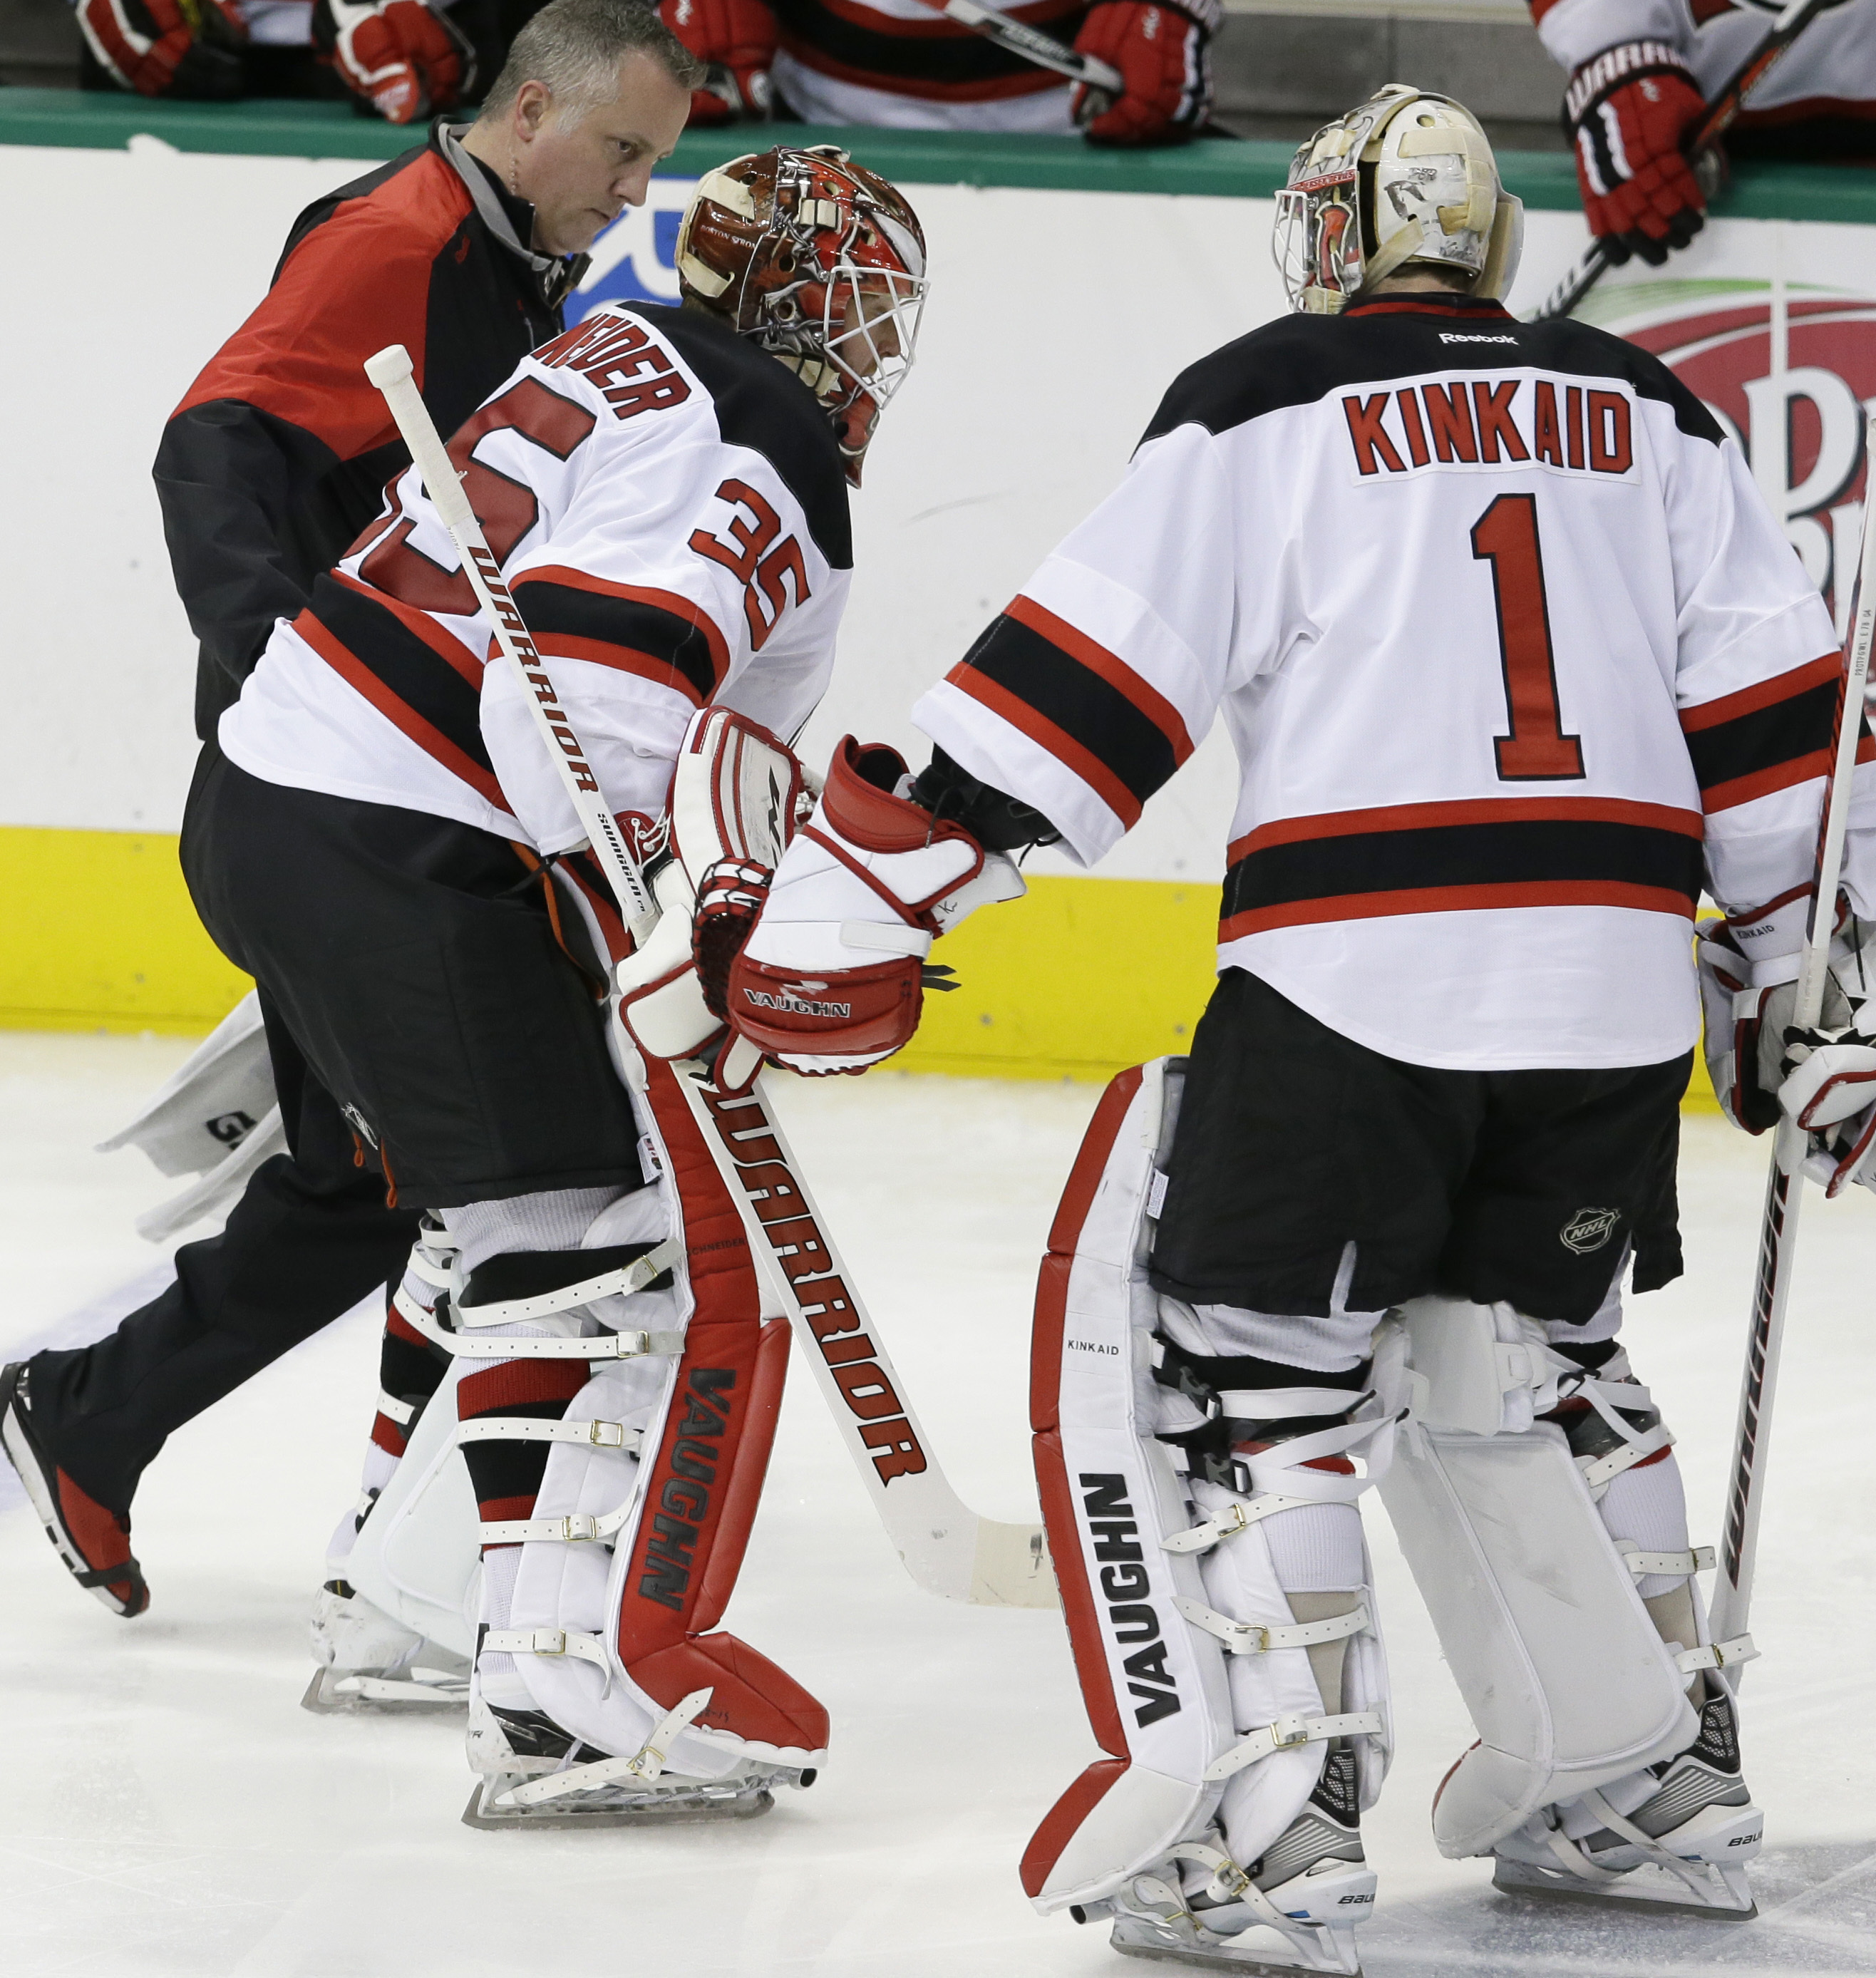 New Jersey Devils goalie Cory Schneider (35) leaves the game with an injury as fellow goalie Keith Kinkaid (1) come in to play during the third period of an NHL hockey game against the Dallas Stars Friday, March 4, 2016, in Dallas. The Stars won 4-2. (AP